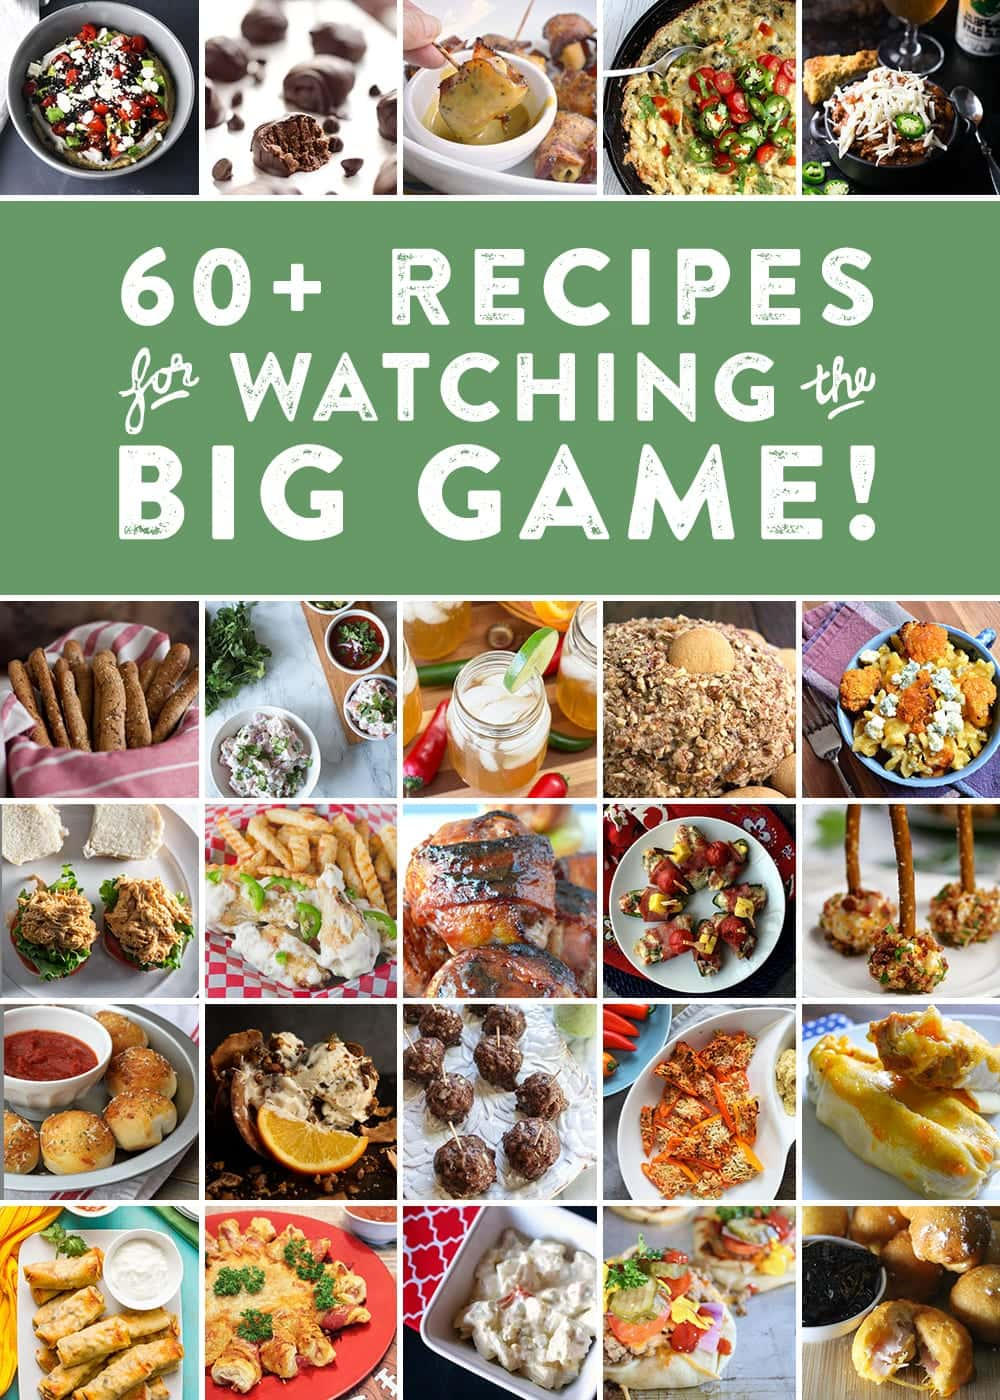 With the football season coming to a close, it's time to start thinking about Big Game parties and inevitably, the recipes you will make and bring to yours! In preparation, I've teamed up with my football blogger friends in one final collaboration to bring you some brilliant Big Game recipe ideas. We've made appetizers, entrees, desserts and even drinks.